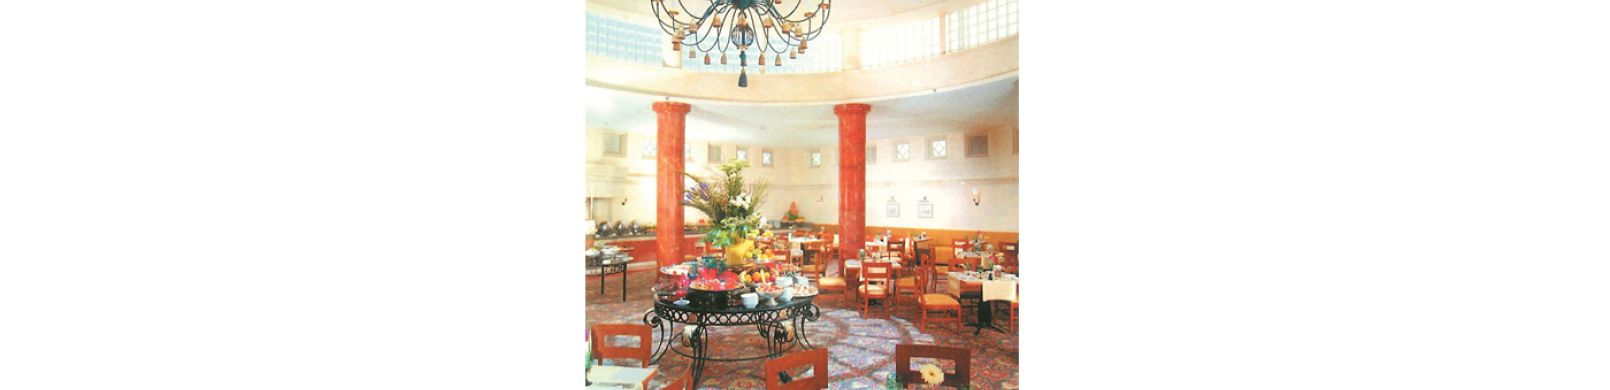 Intercontinental Jordan Hotel